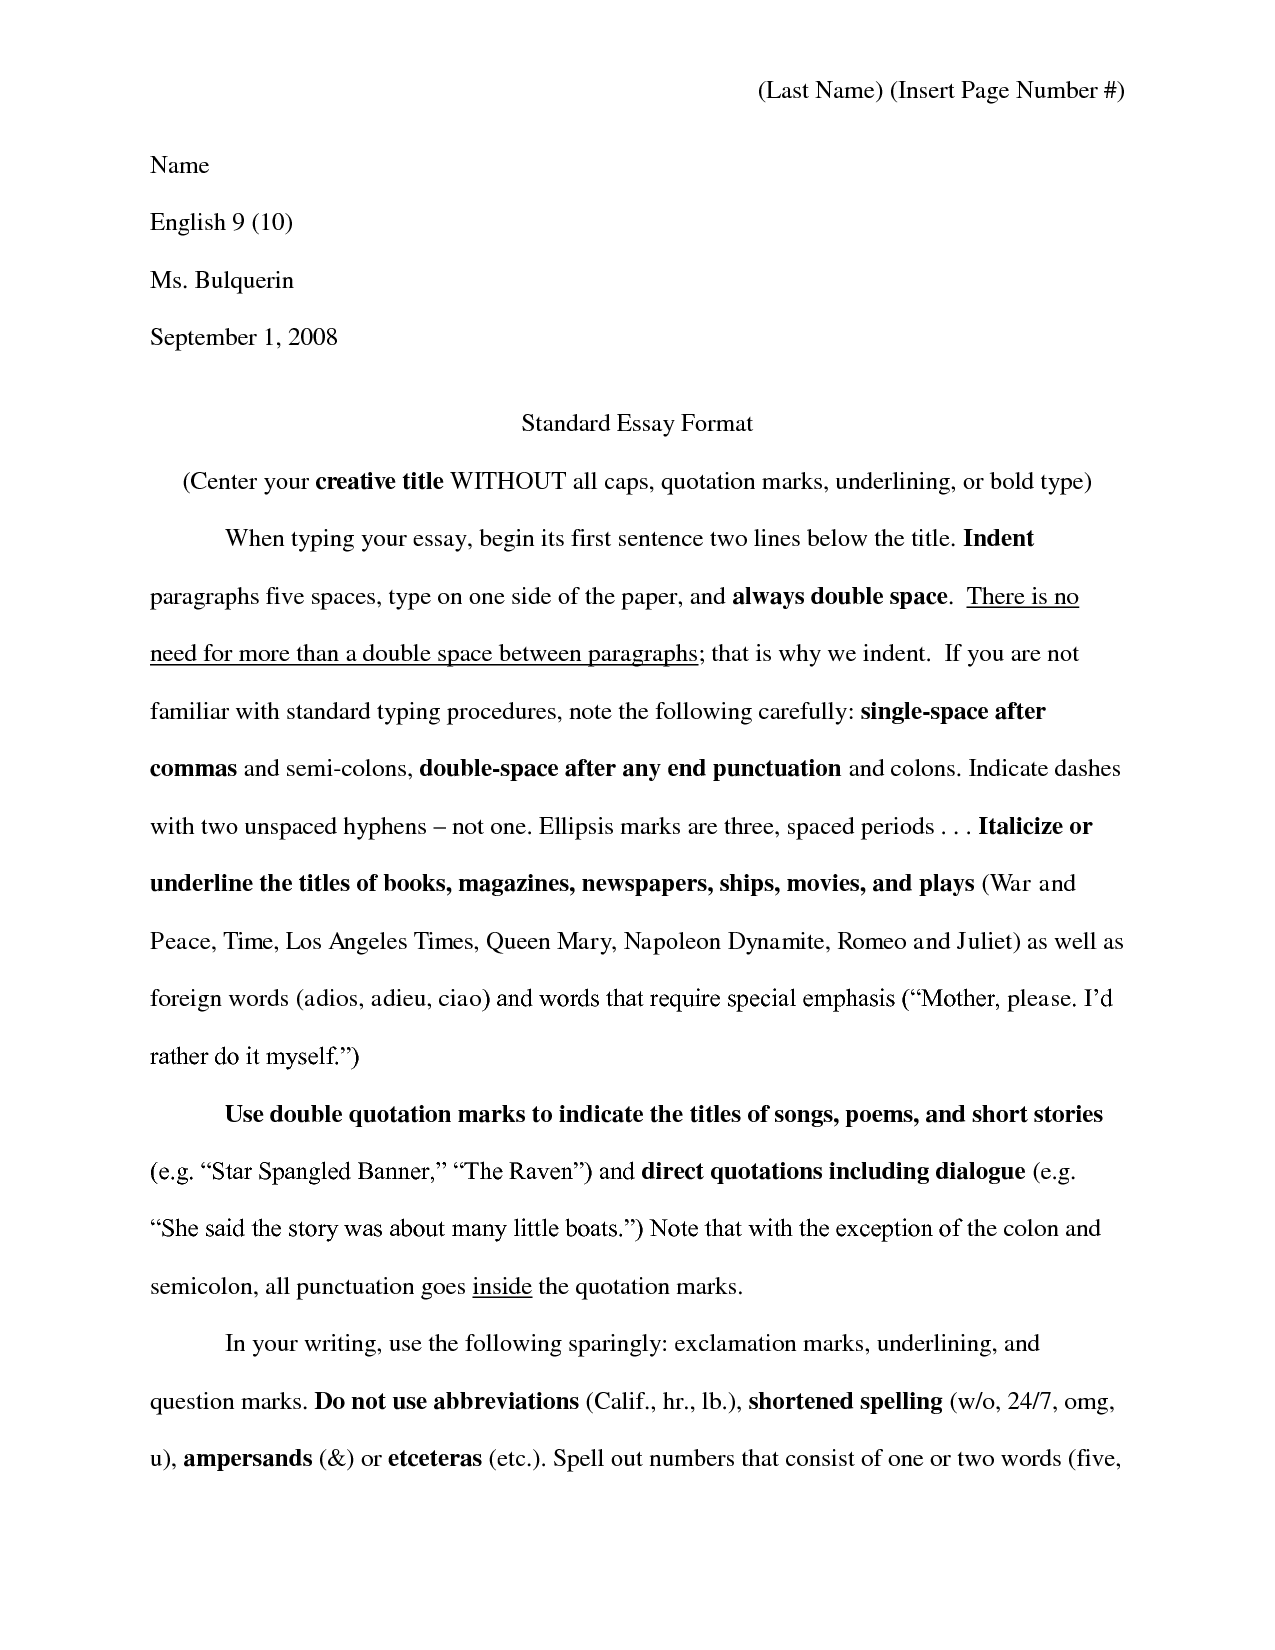 Essay layout sample